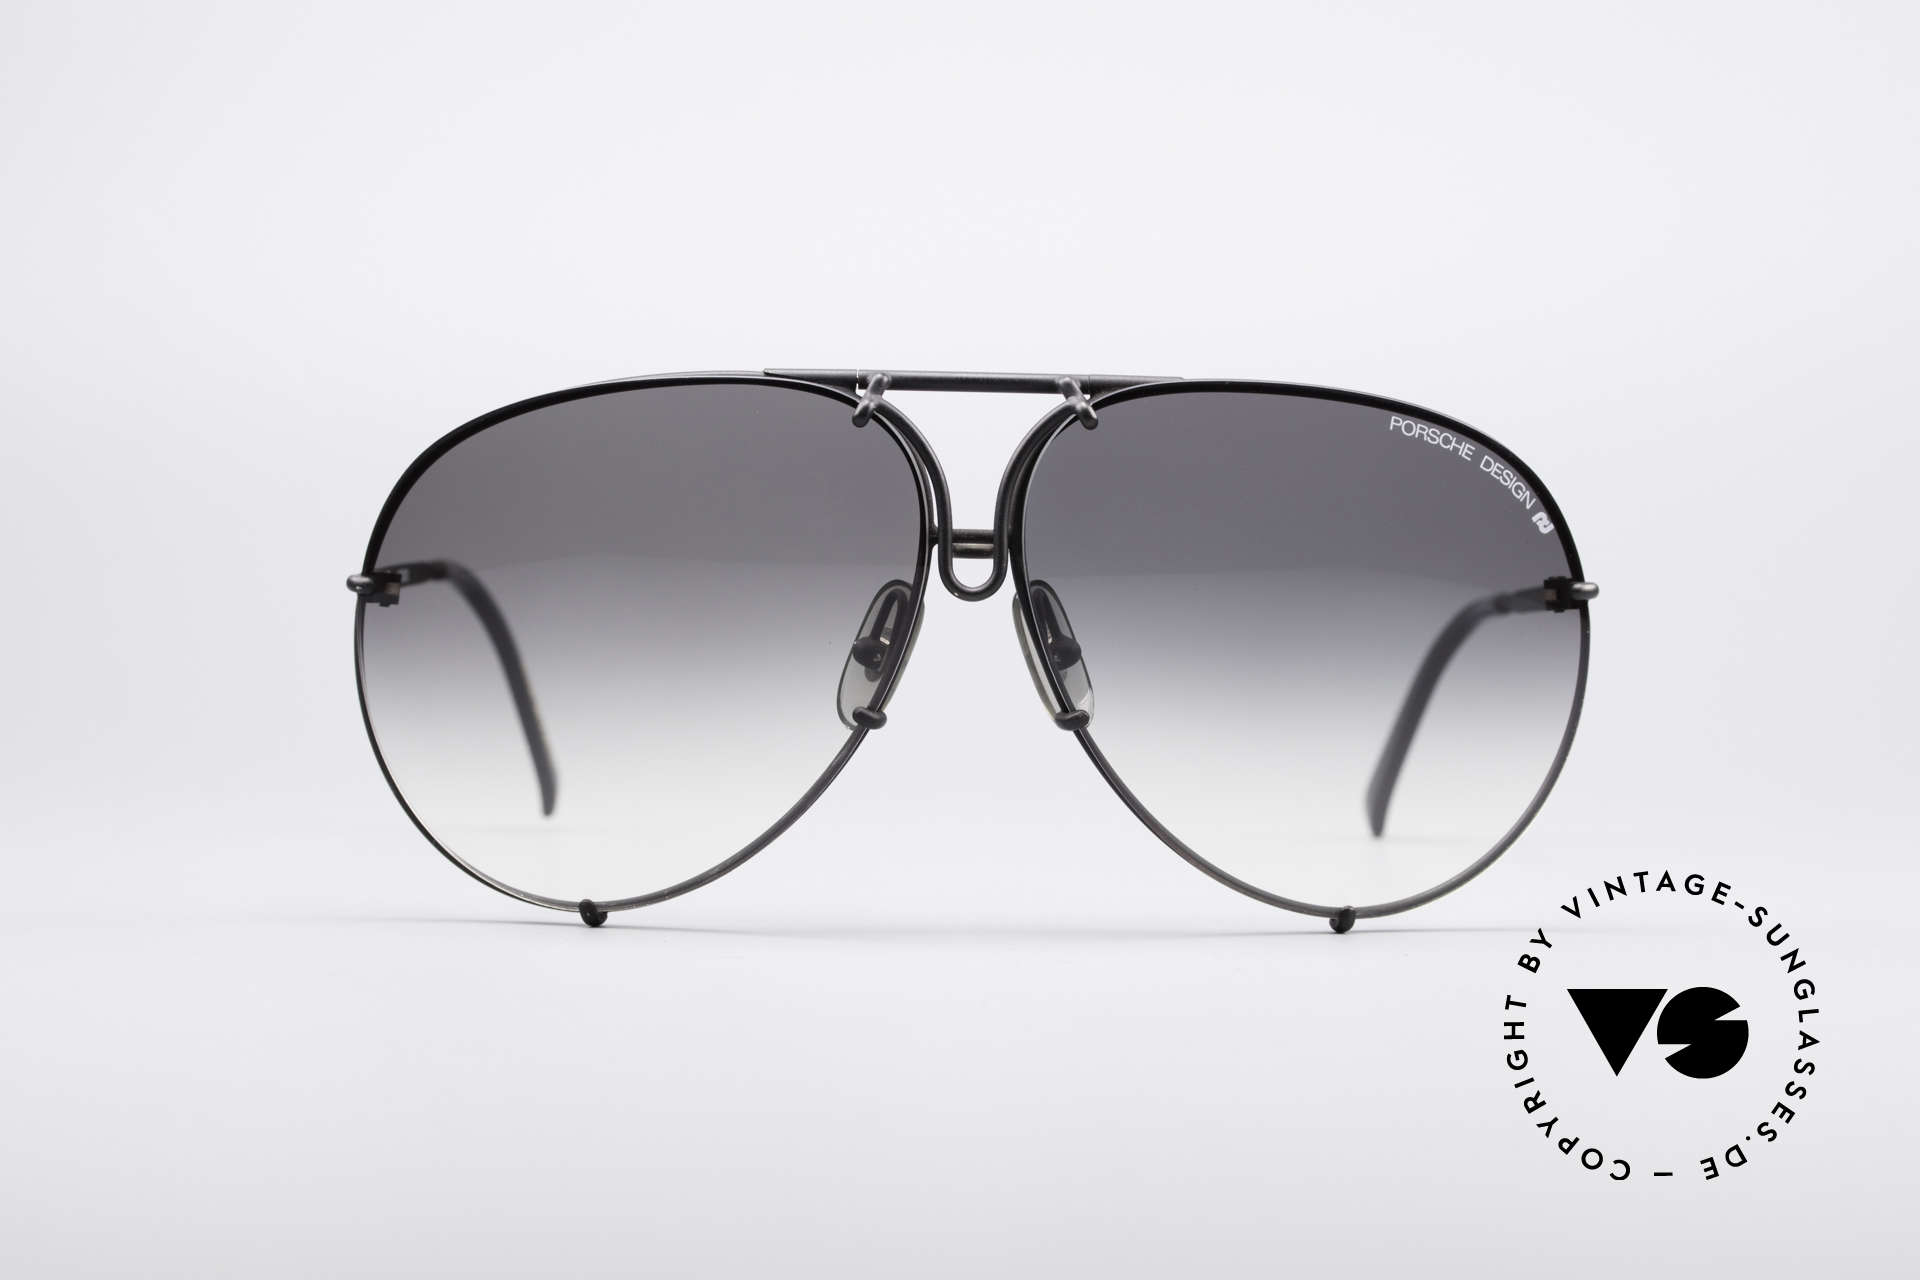 0969dcb37b32 You may also like these glasses. Porsche 5637 Military Style 80 s Shades  Details